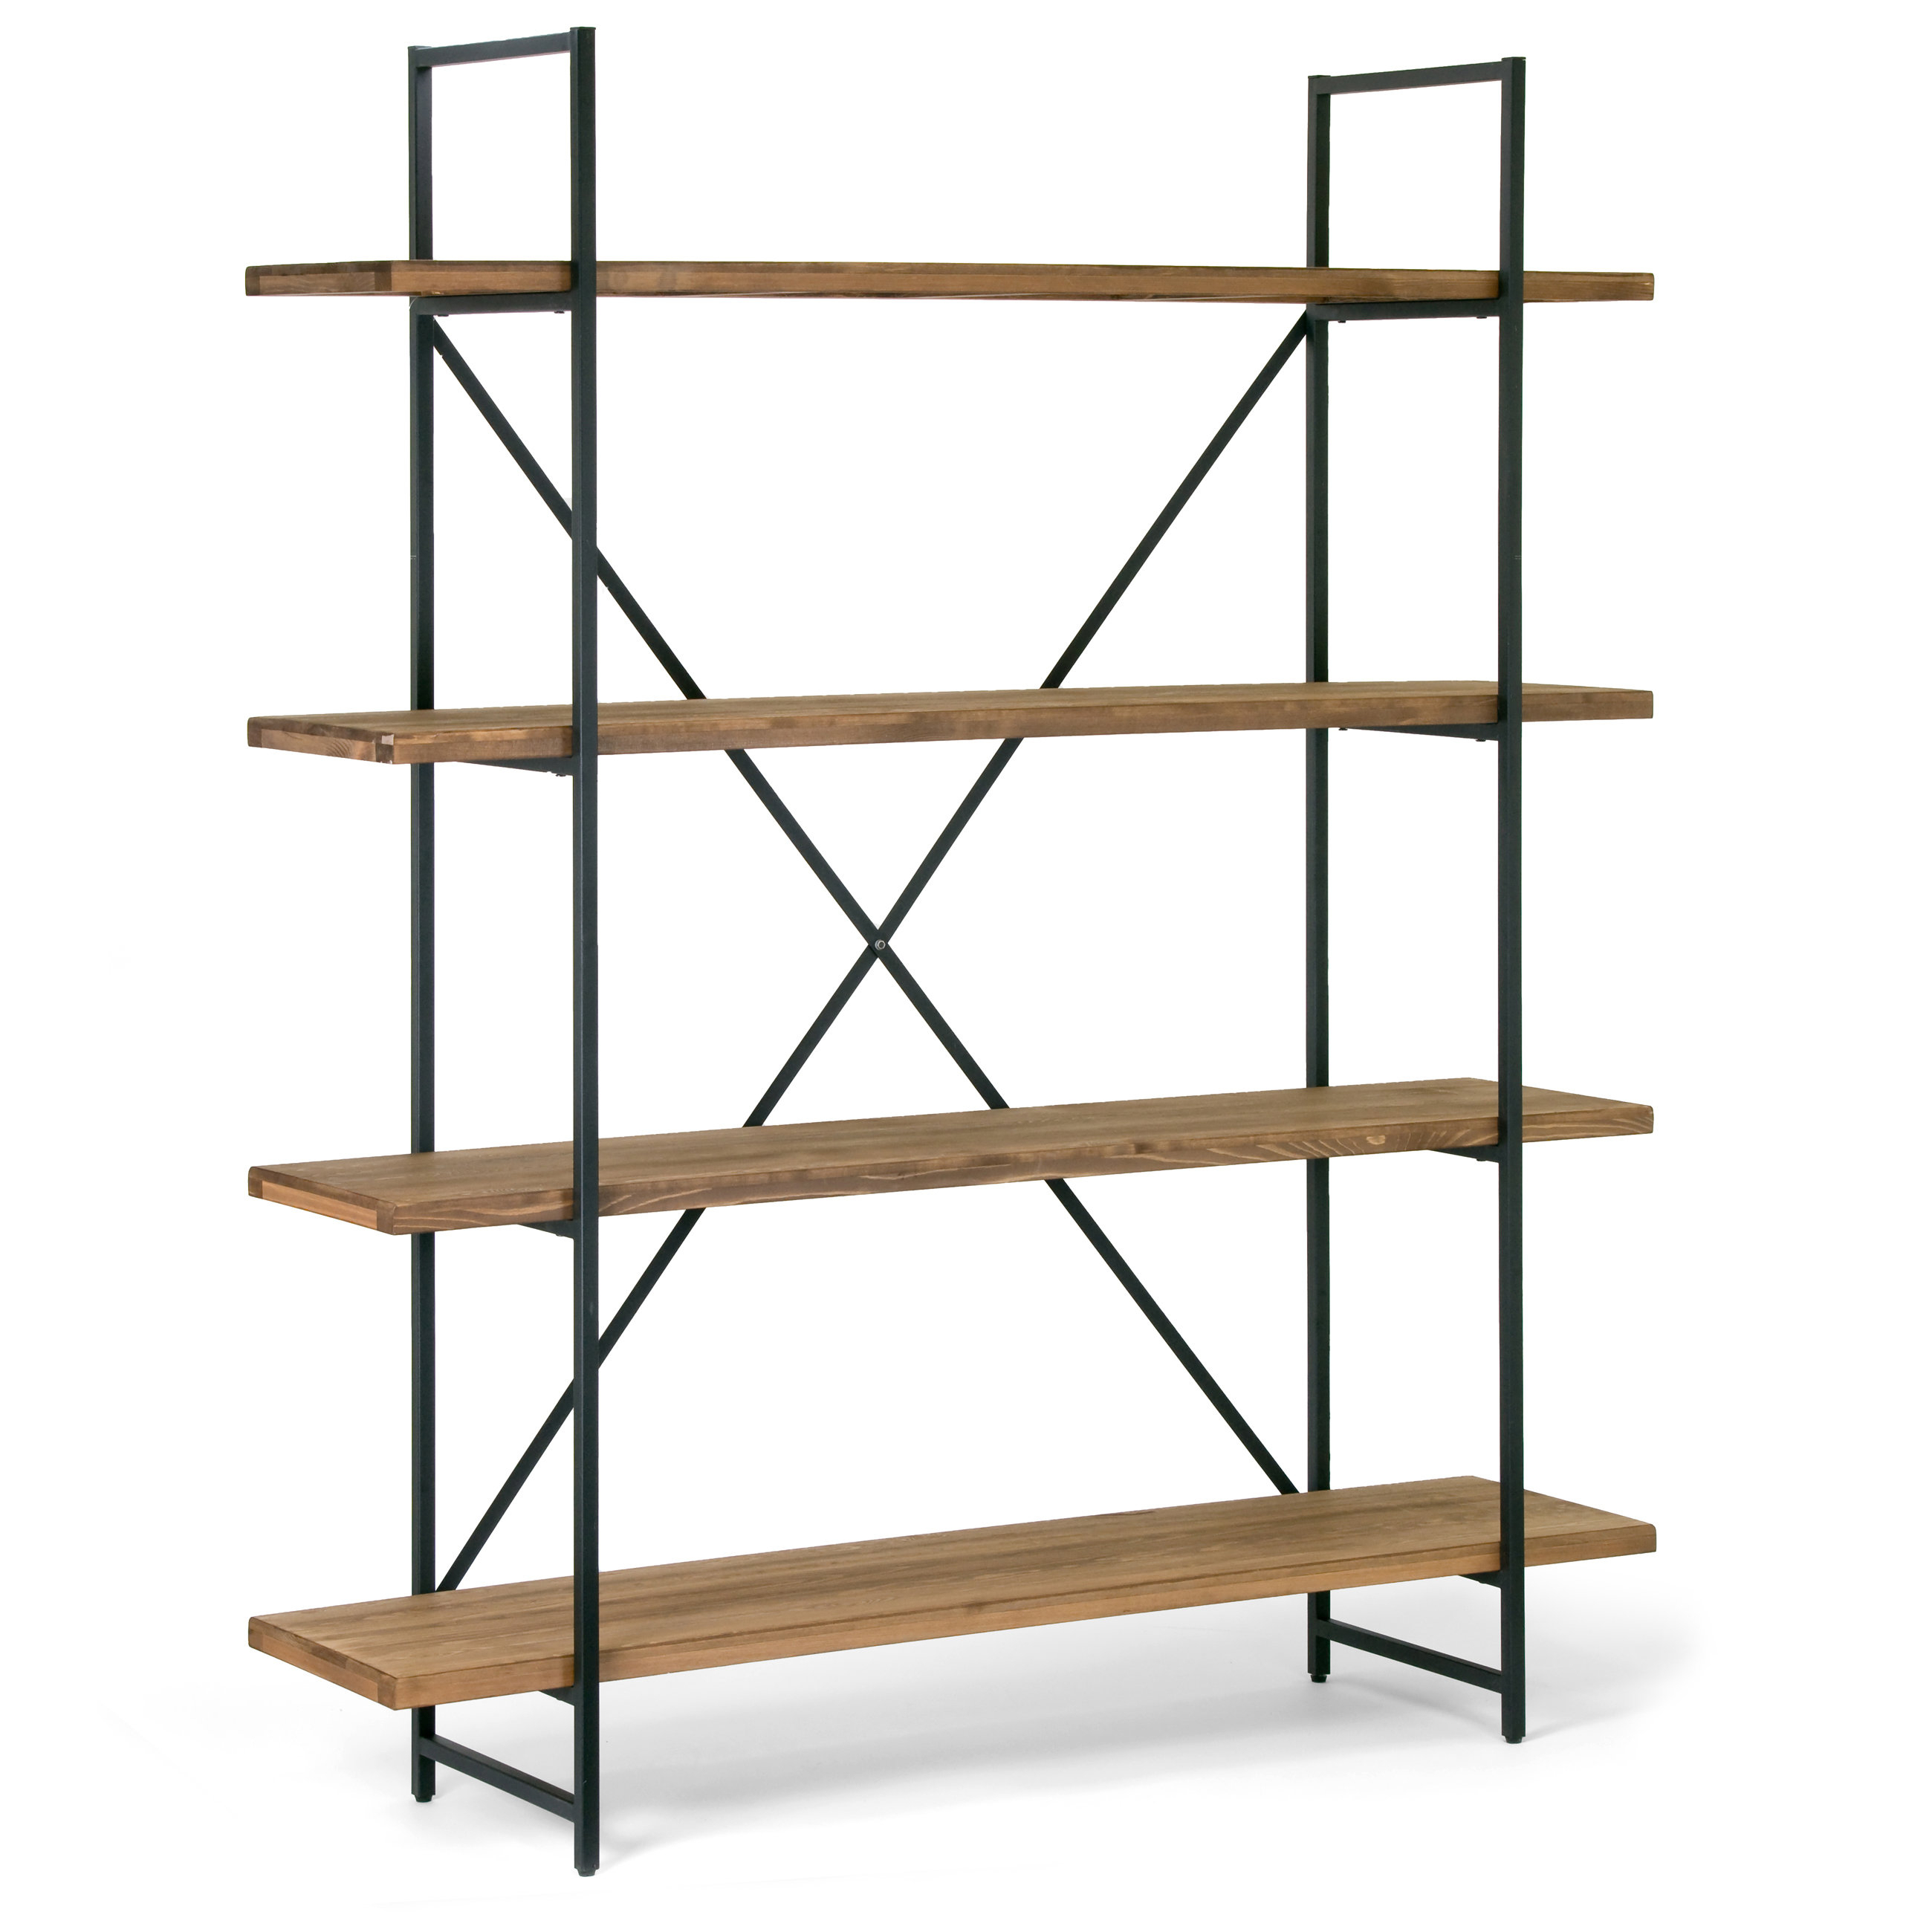 Popular Swindell Etagere Bookcases Regarding Champney Modern Etagere Bookcase (View 8 of 20)